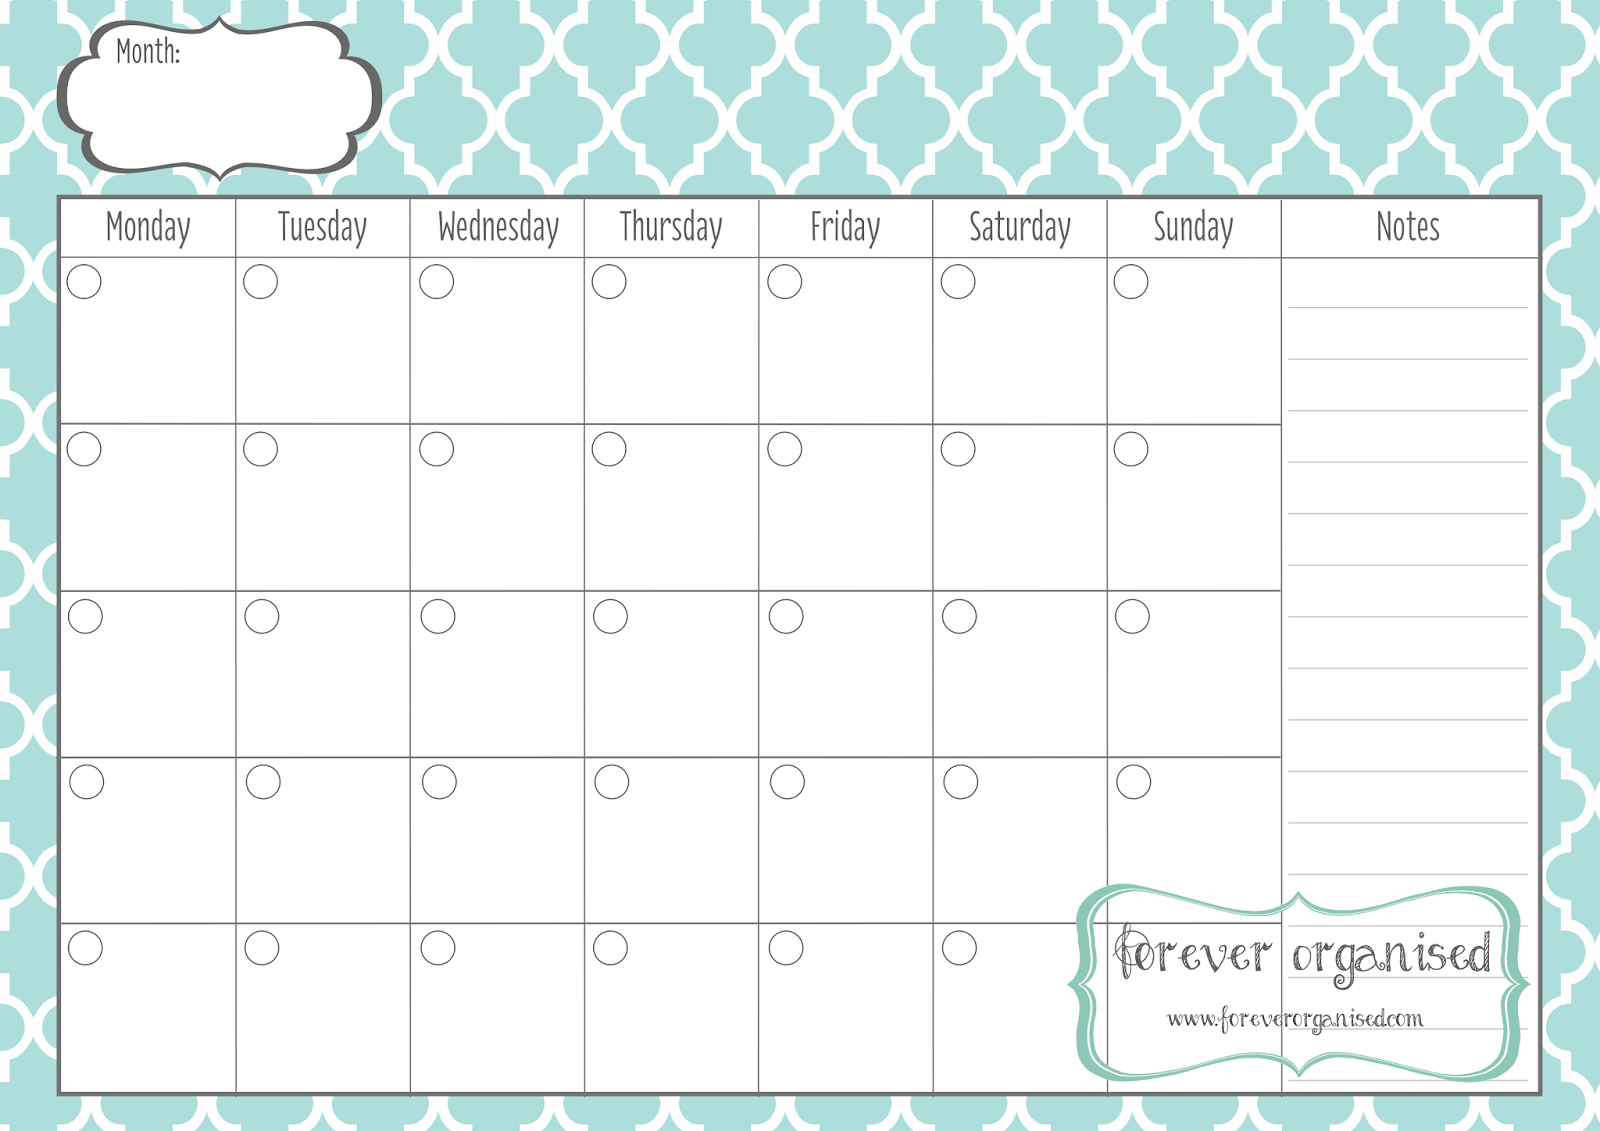 Weekly Calendar Print Out : Monthly calendar to print templates free printable